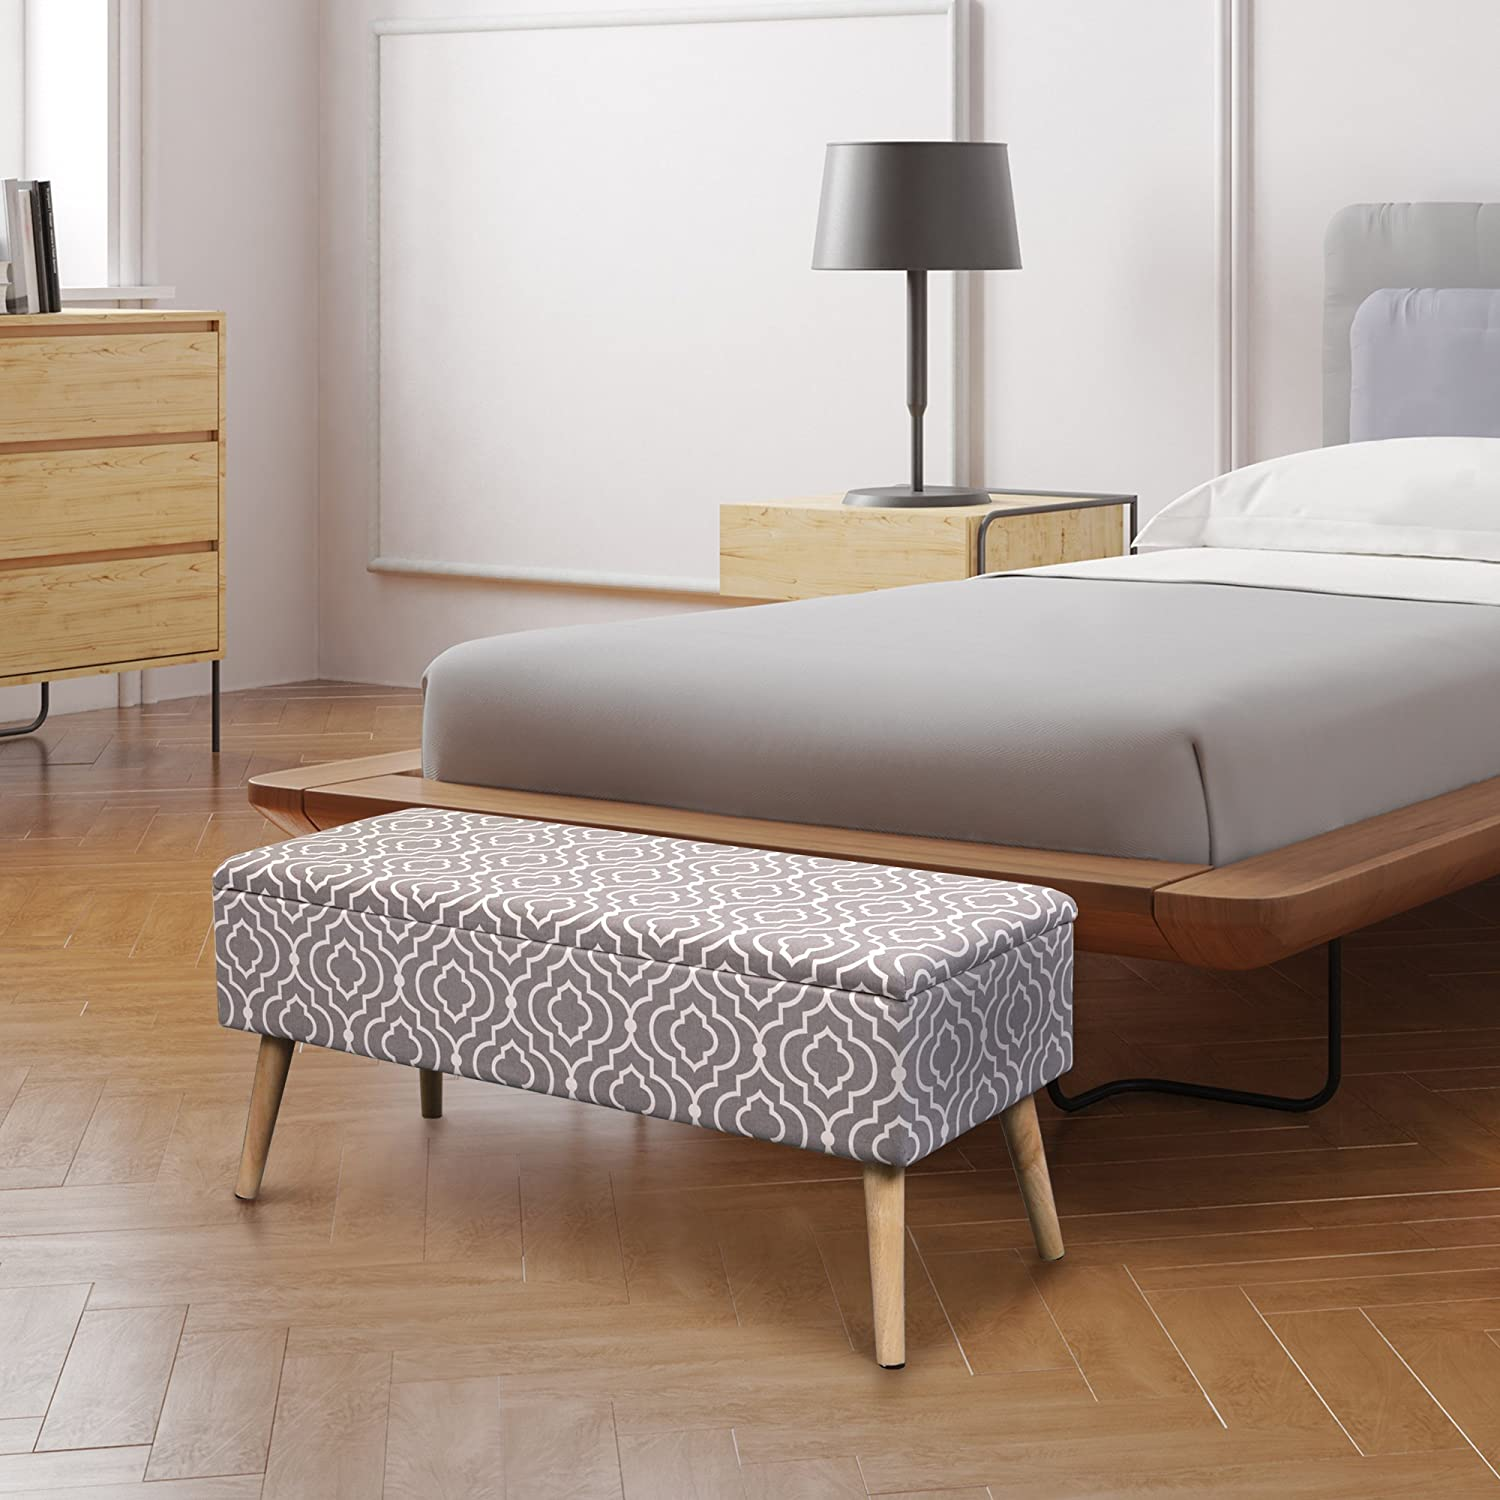 Otto Ben 37 Storage Bench – Mid Century Ottoman with EASY LIFT Top, Upholstered Shoe Ottomans Seats for Entryway and Bedroom, Moroccan Grey